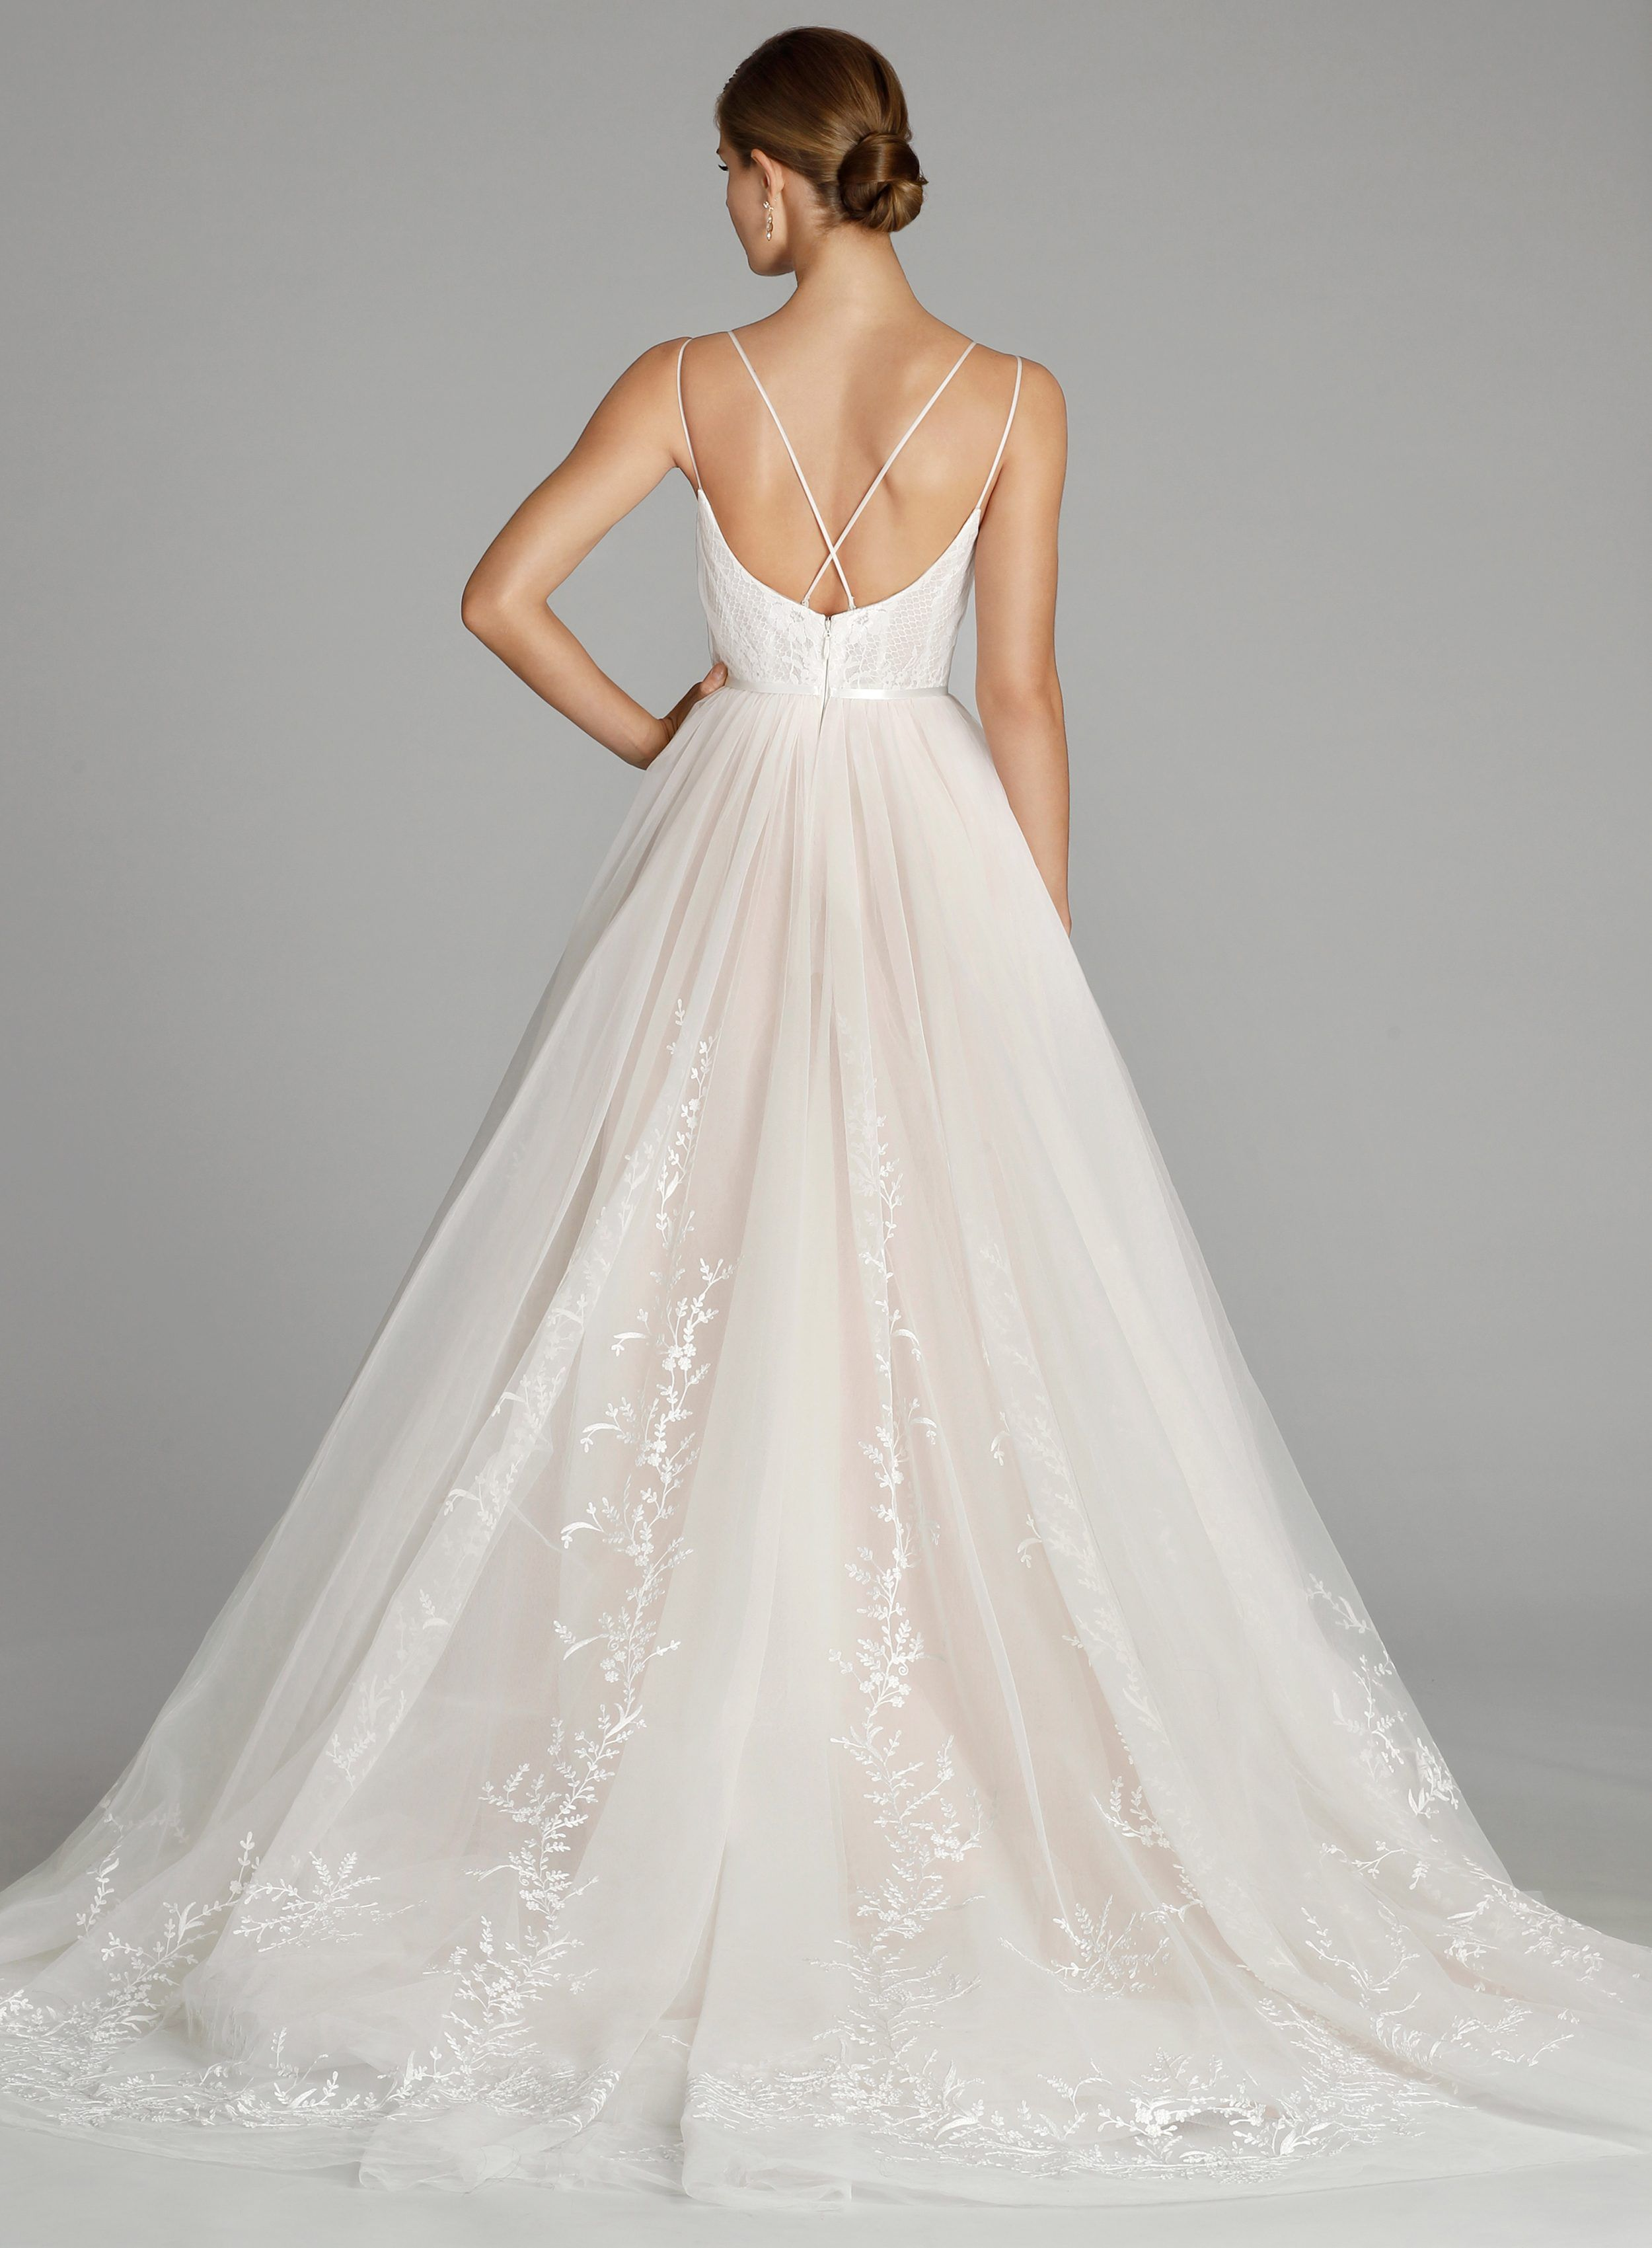 692da5e80069 Alvina Valenta - tulle flowing wedding gown with delicate floral embroidery  and double spaghetti straps